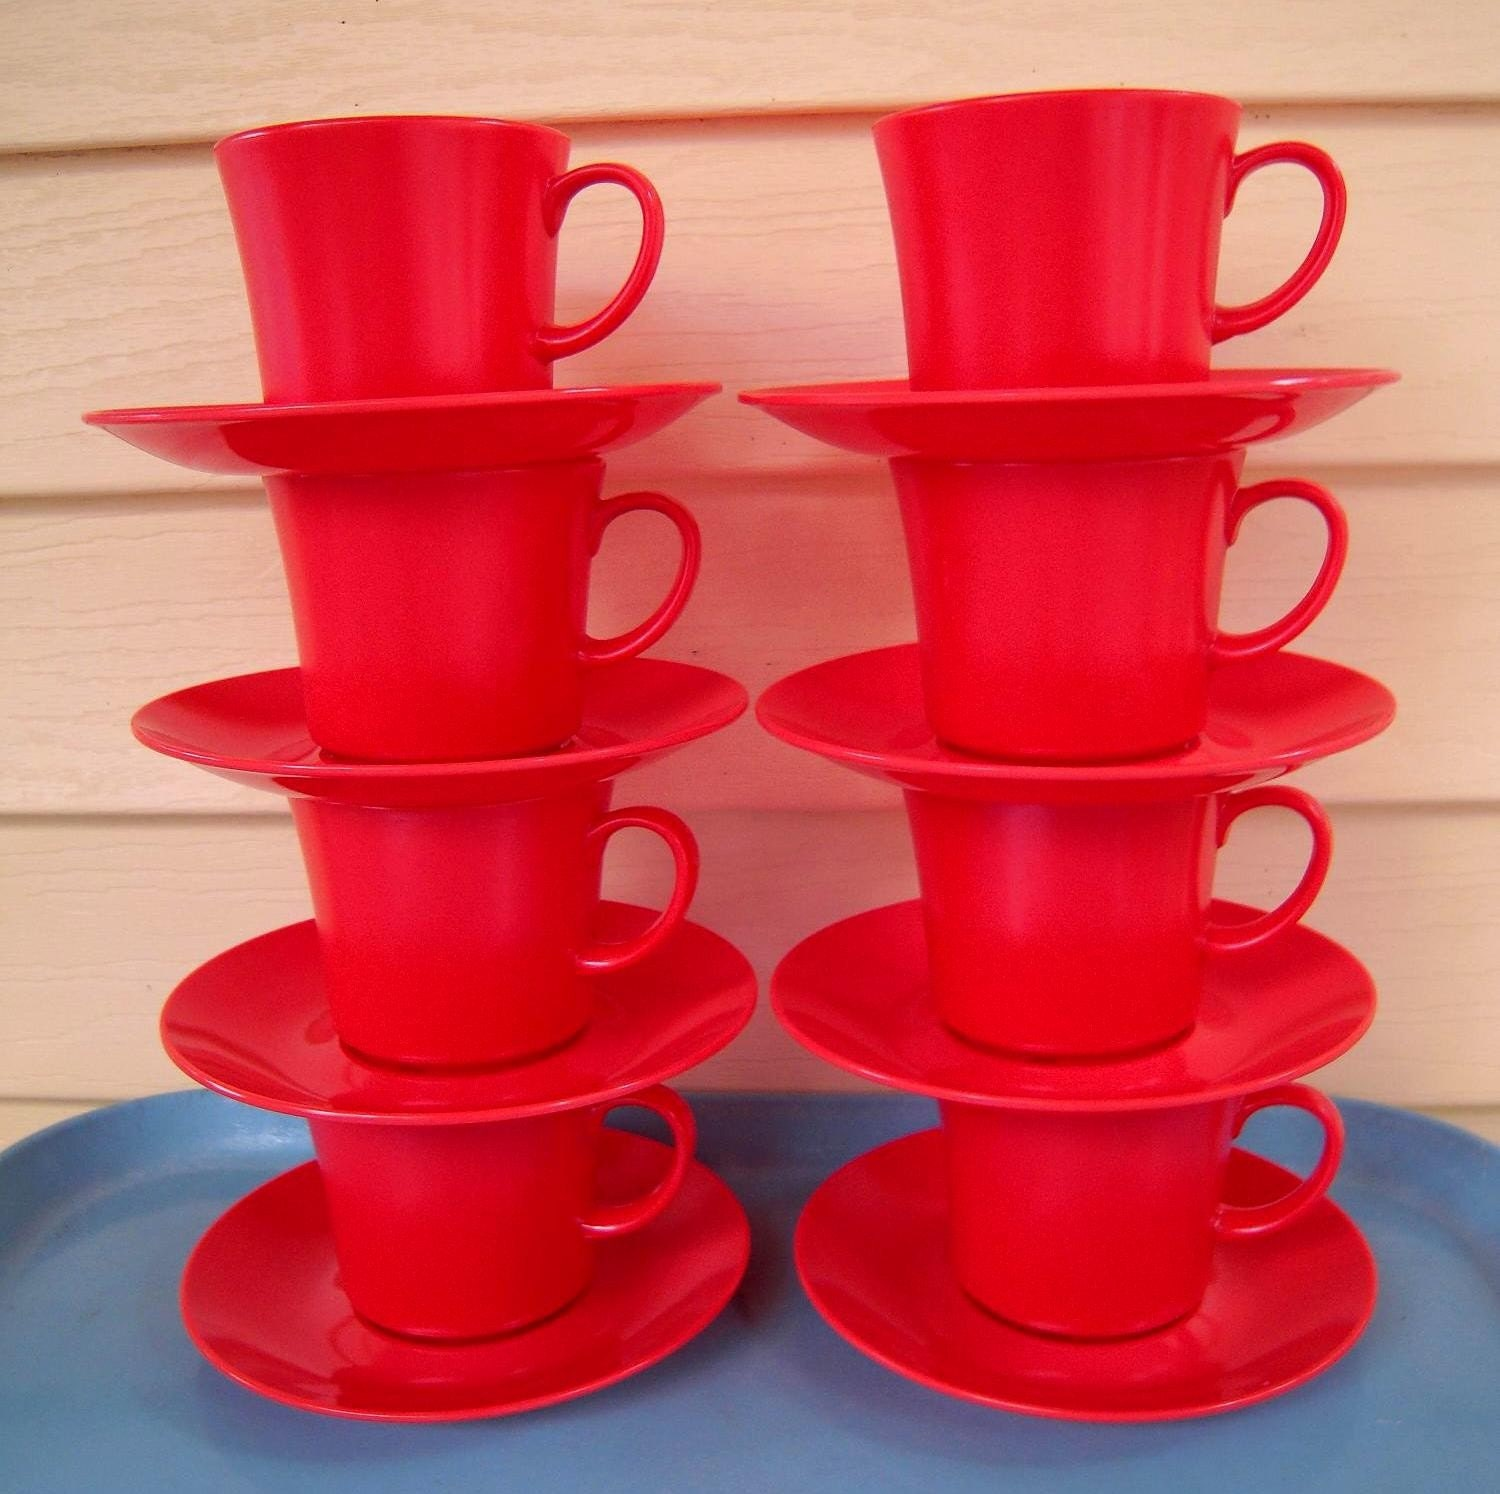 Its starting to cool off a bit and its hard to believe that fall is just on the horizon! This set of red orange melmac cups and saucers are the perfect thing for all your entertaining needs! Sip some hot cider in these!